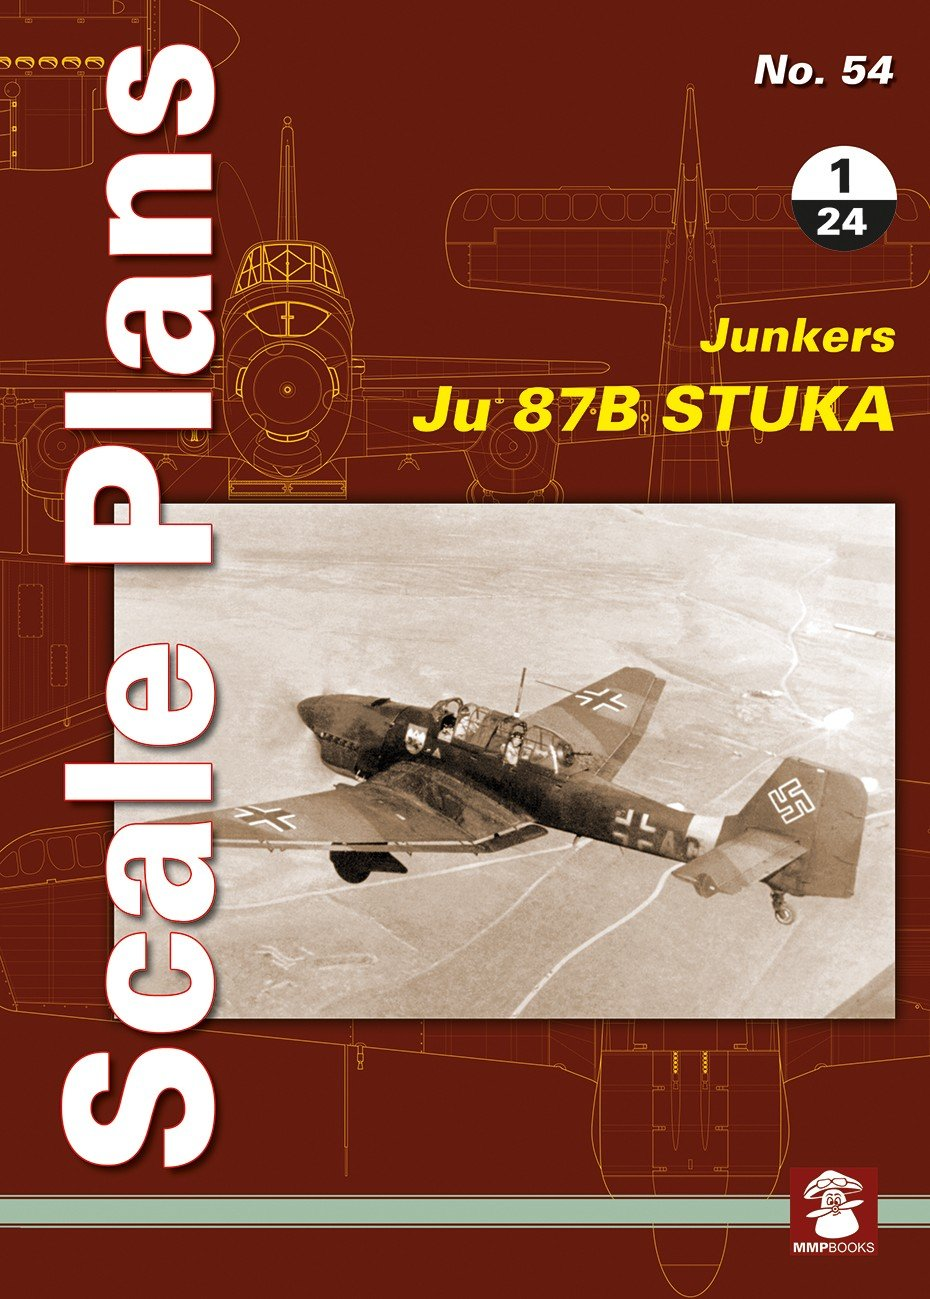 Scale Plans No. 54 Junkers Ju 87 B Stuka in 1/24